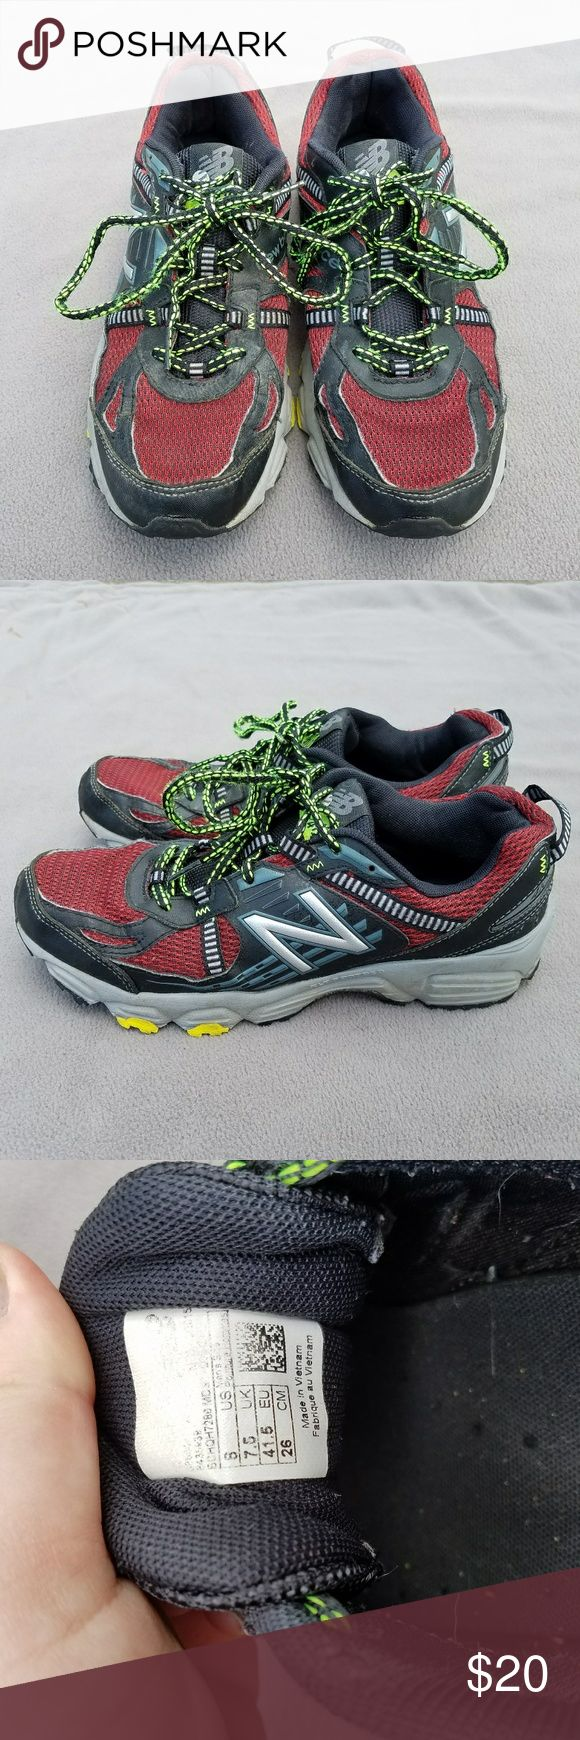 Men's red and black New Balance Gently used condition. Worn about 6 months to school. New Balance Shoes Sneakers